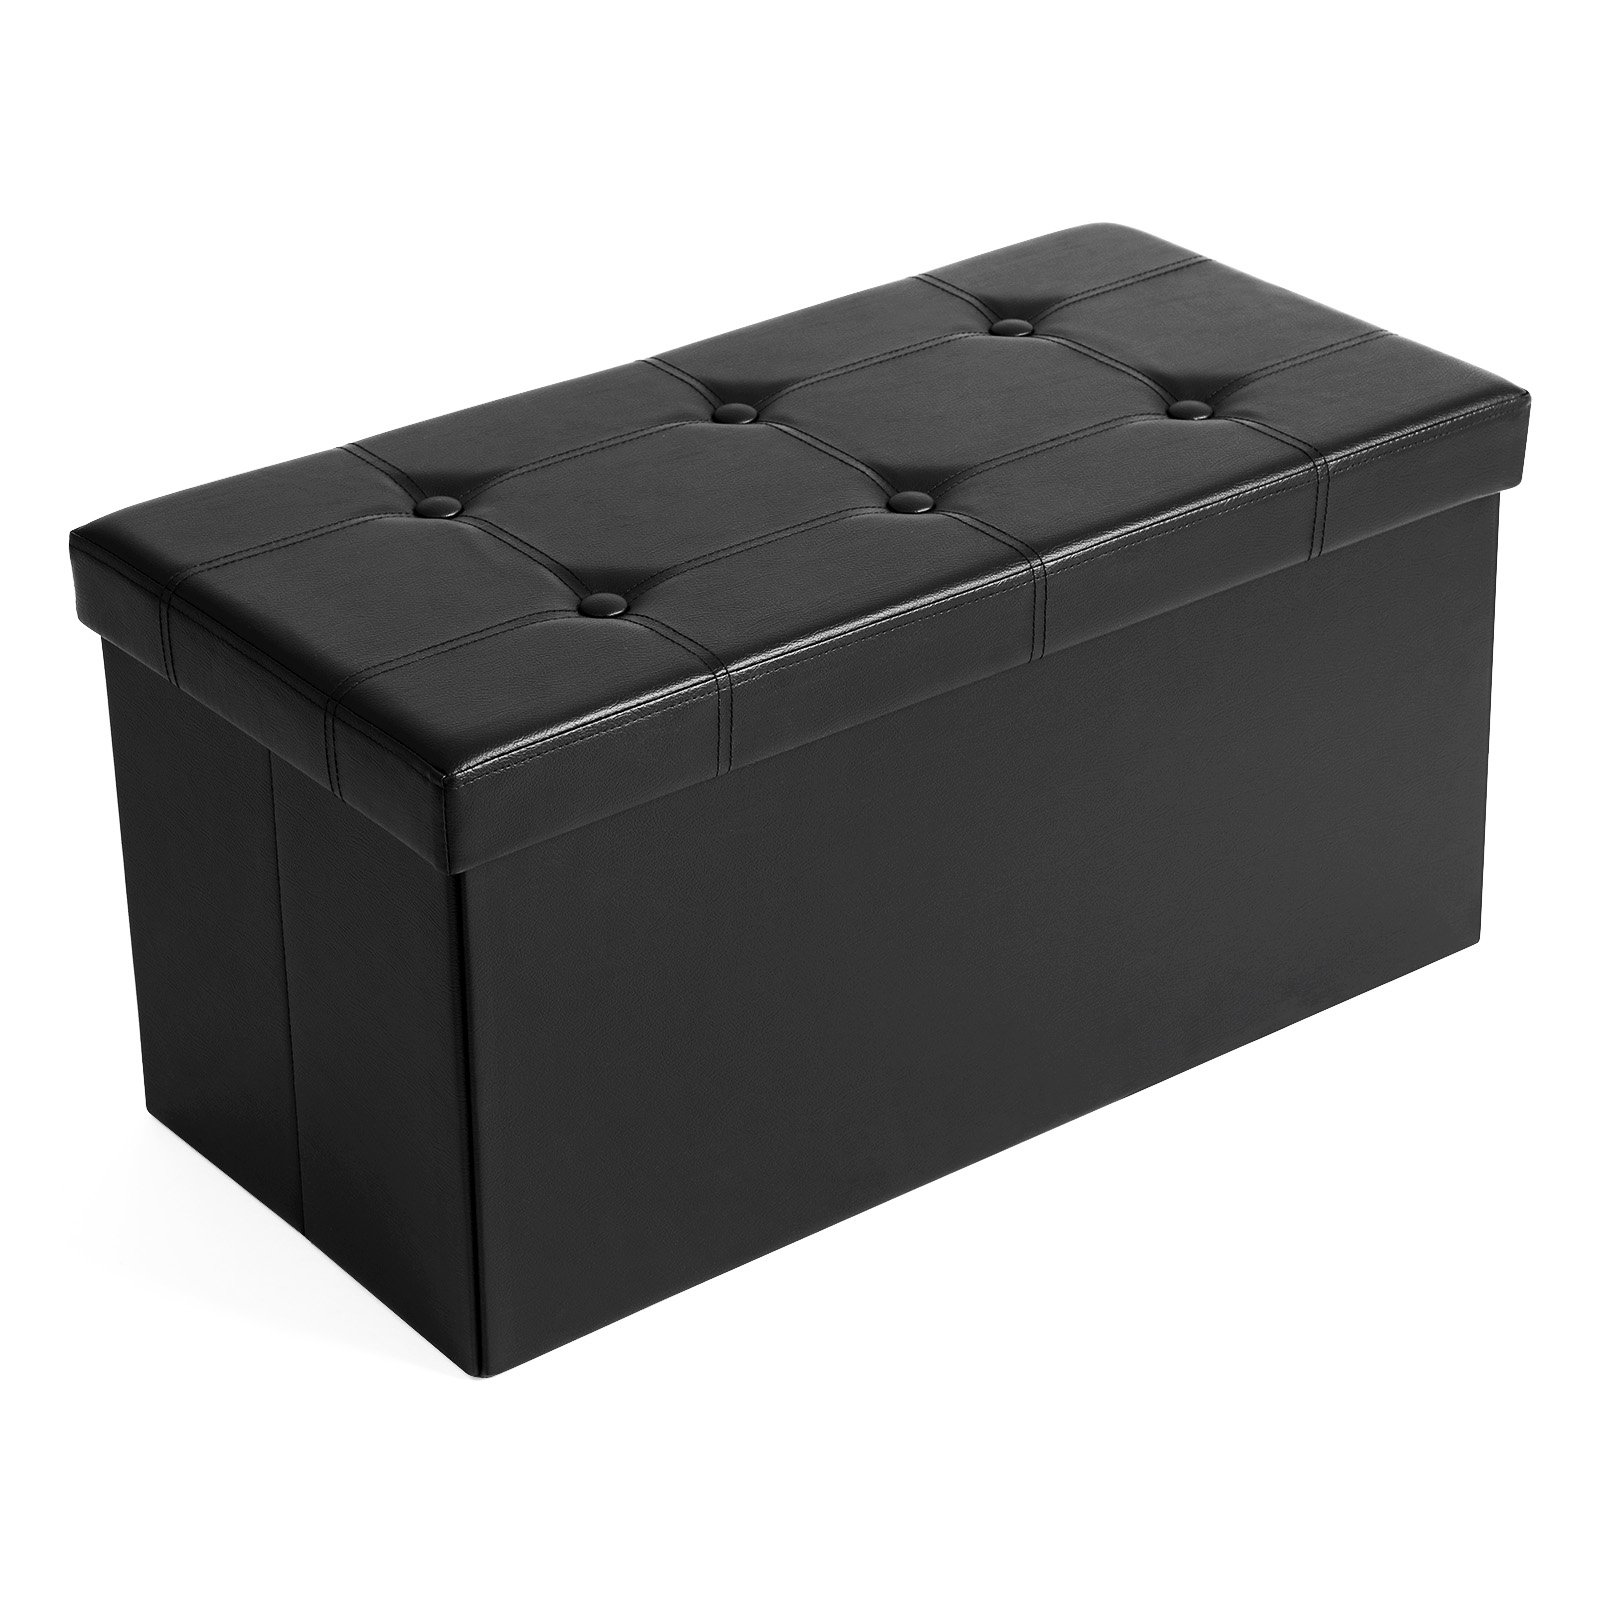 SONGMICS 30 Inches Faux Leather Folding Storage Ottoman Bench, Storage Chest Footrest Coffee Table Padded Seat, Black ULSF105 by SONGMICS